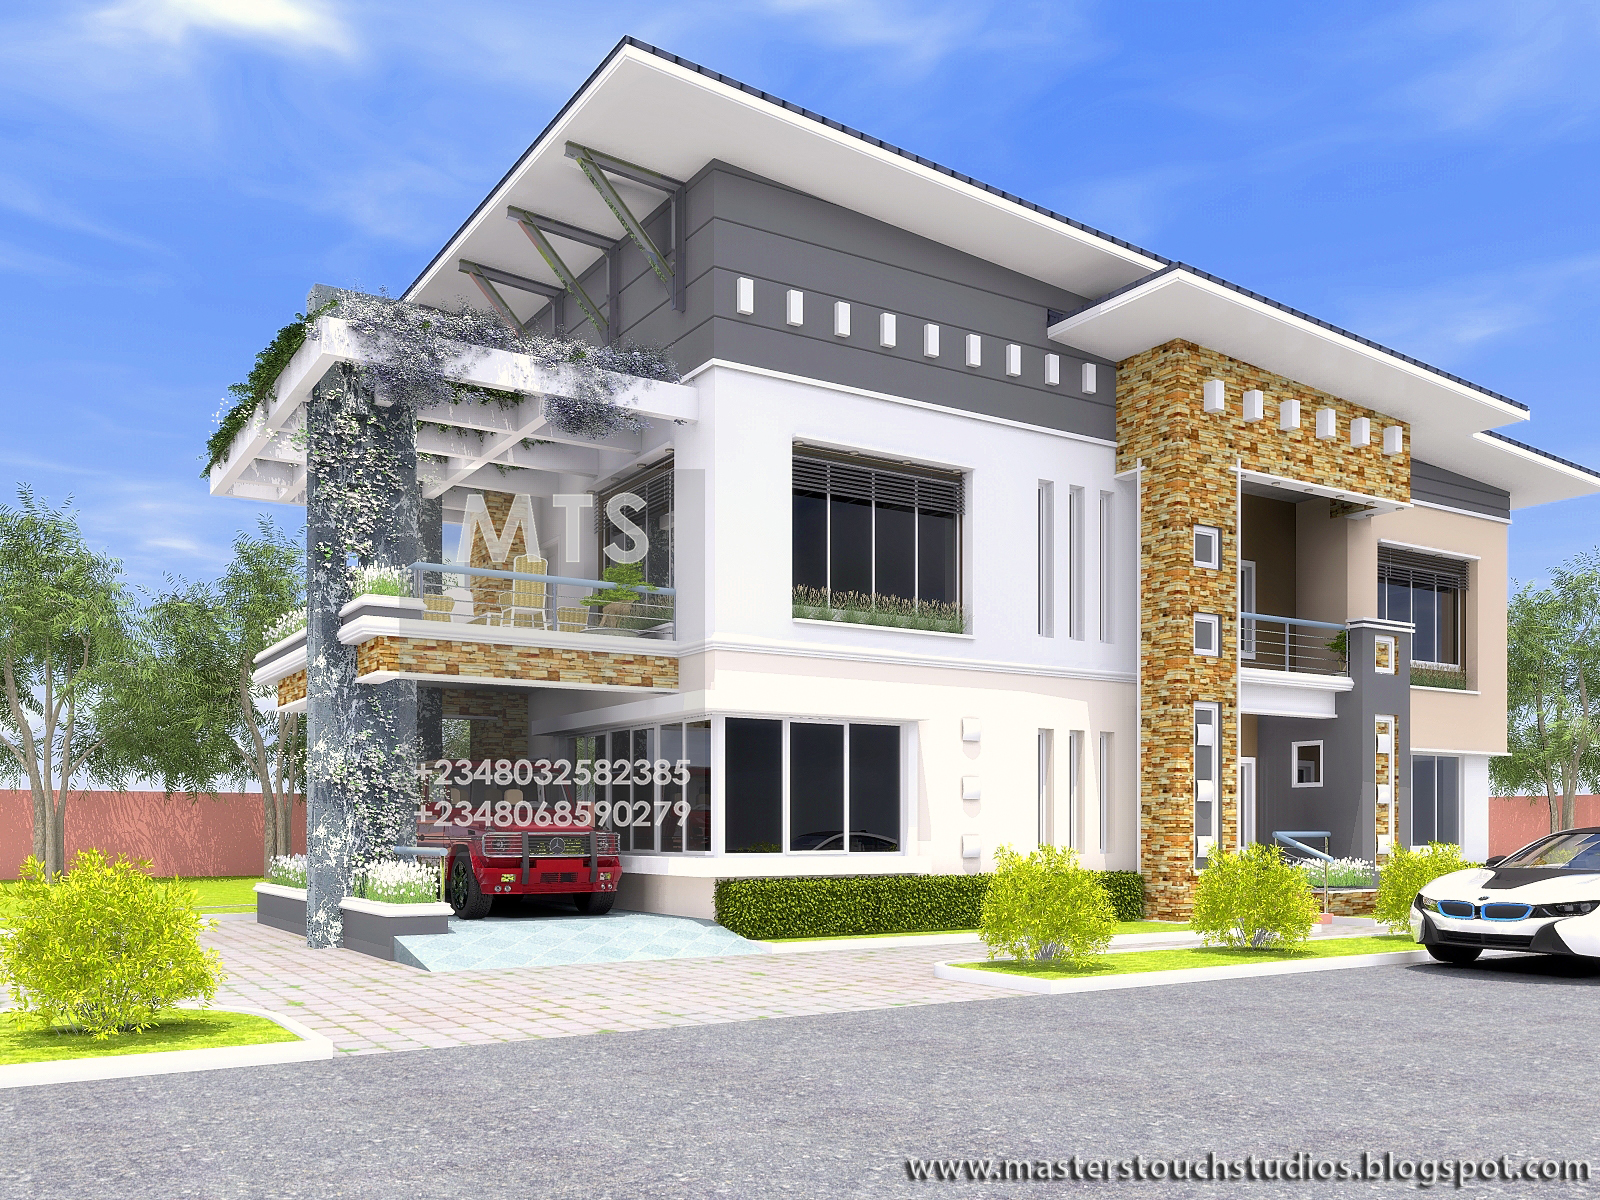 Engr eddy 6 bedroom duplex modern and contemporary for 6 bedroom house designs